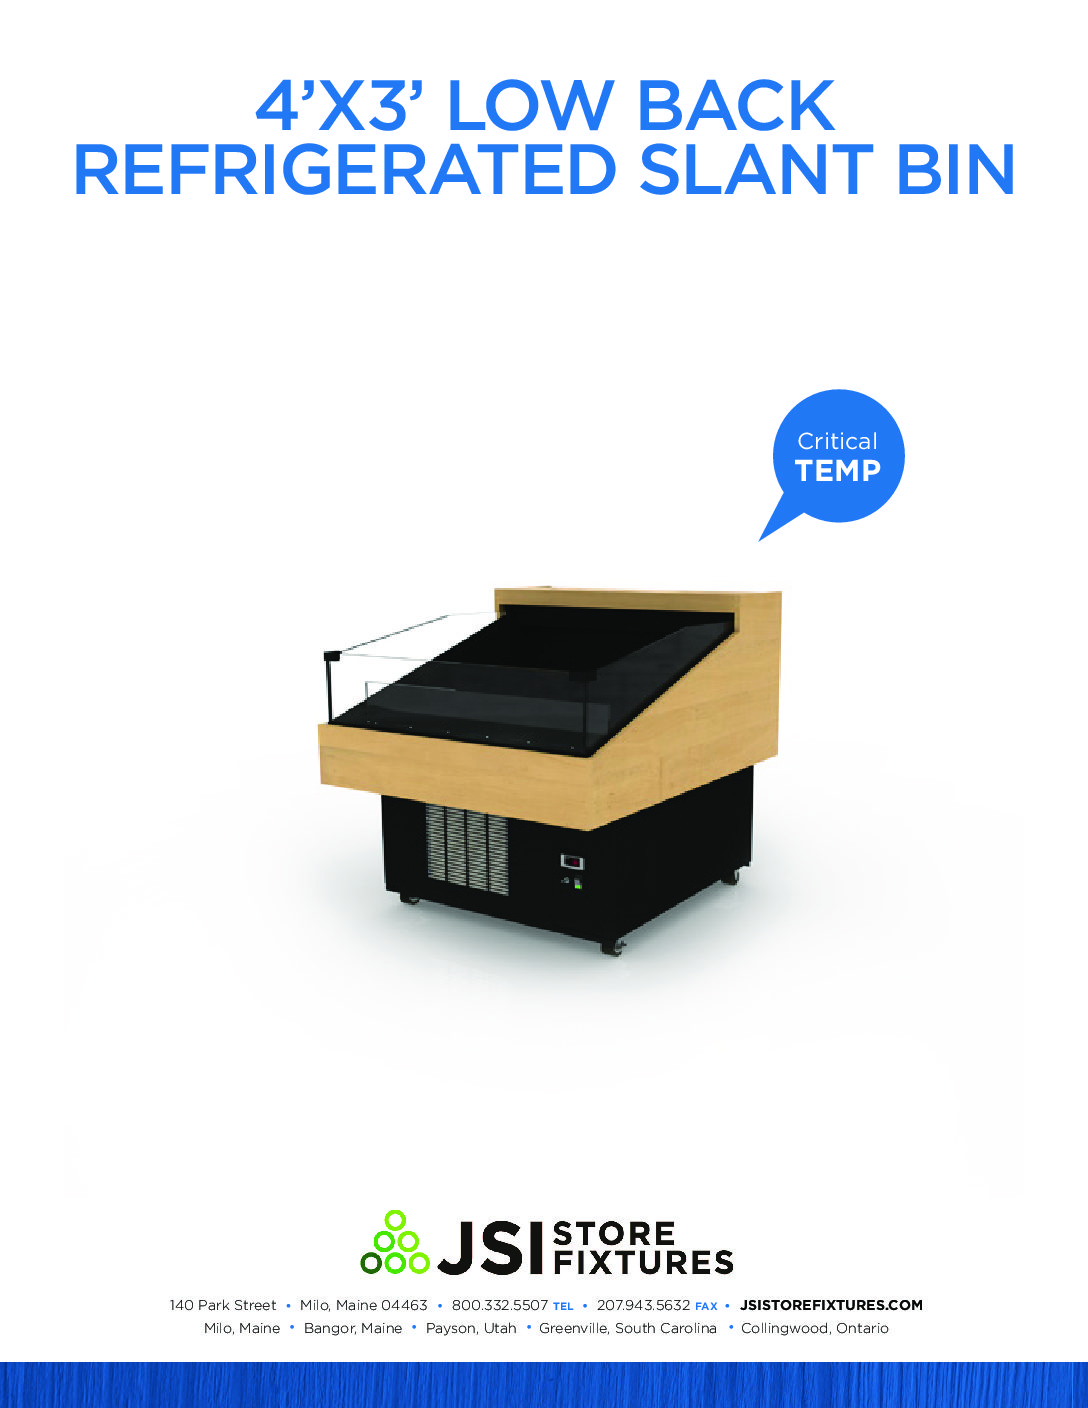 4'x3' Low Back Refrigerated Slant Bin Spec Sheet